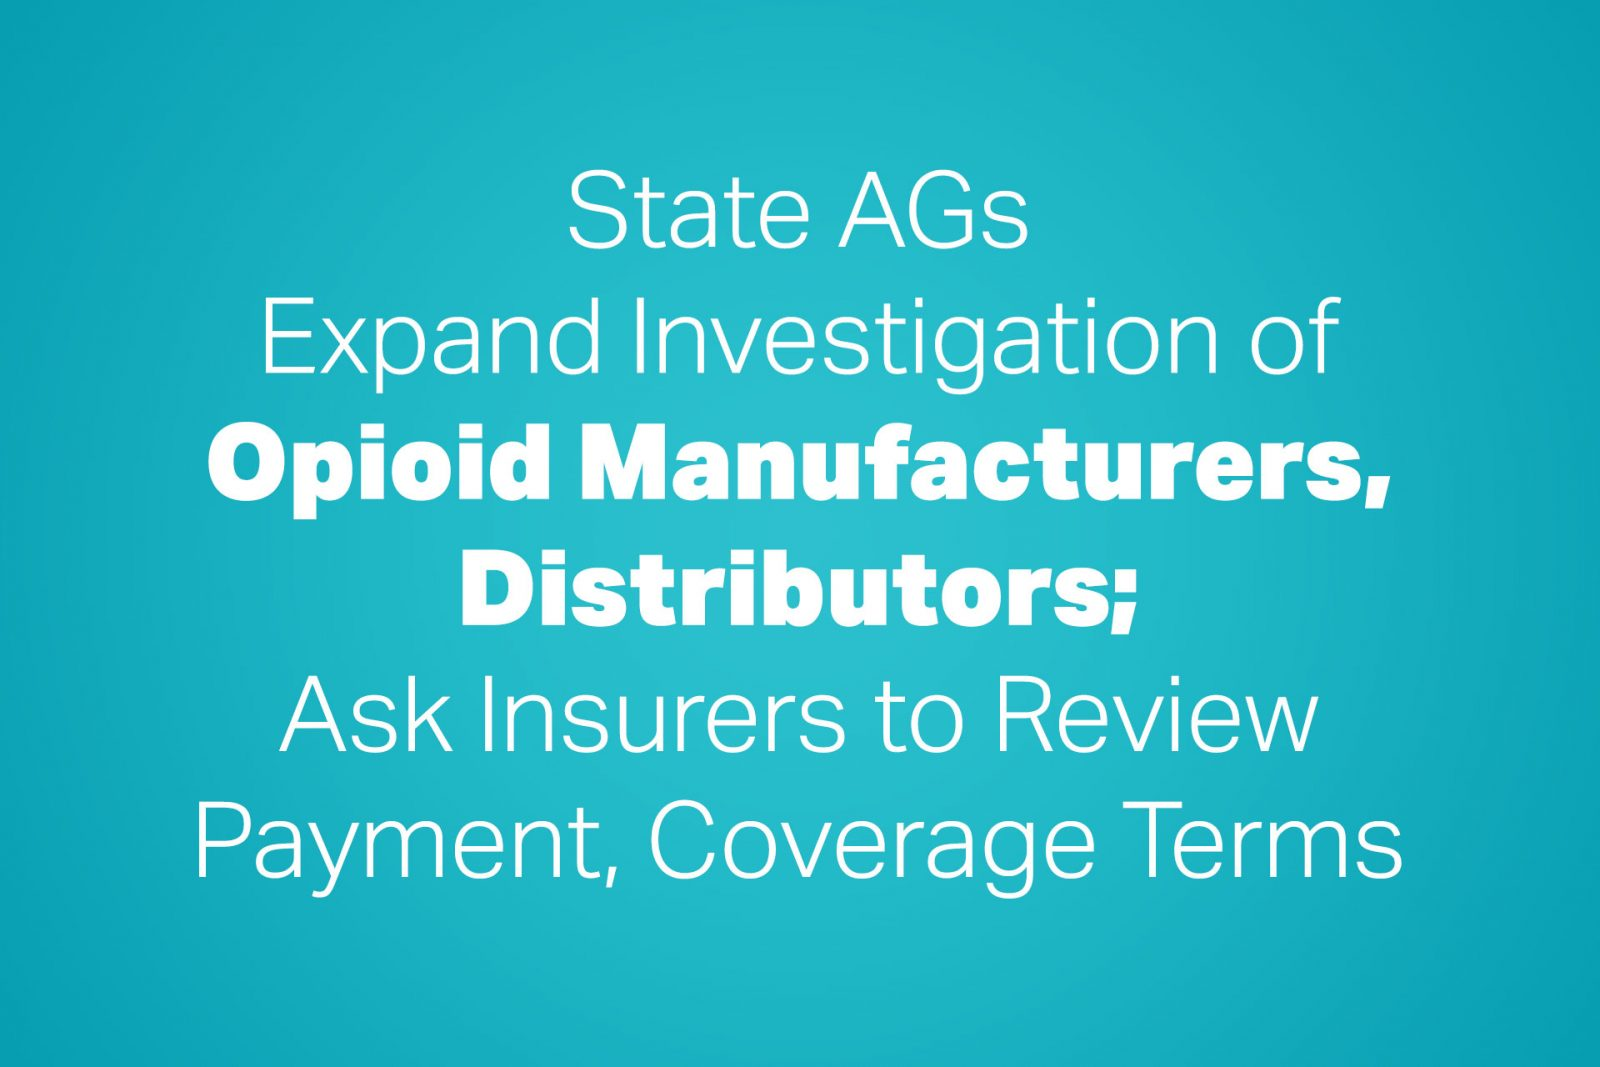 State AGs Expand Investigation of Opioid Manufacturers, Distributors; Ask Insurers to Review Payment, Coverage Terms